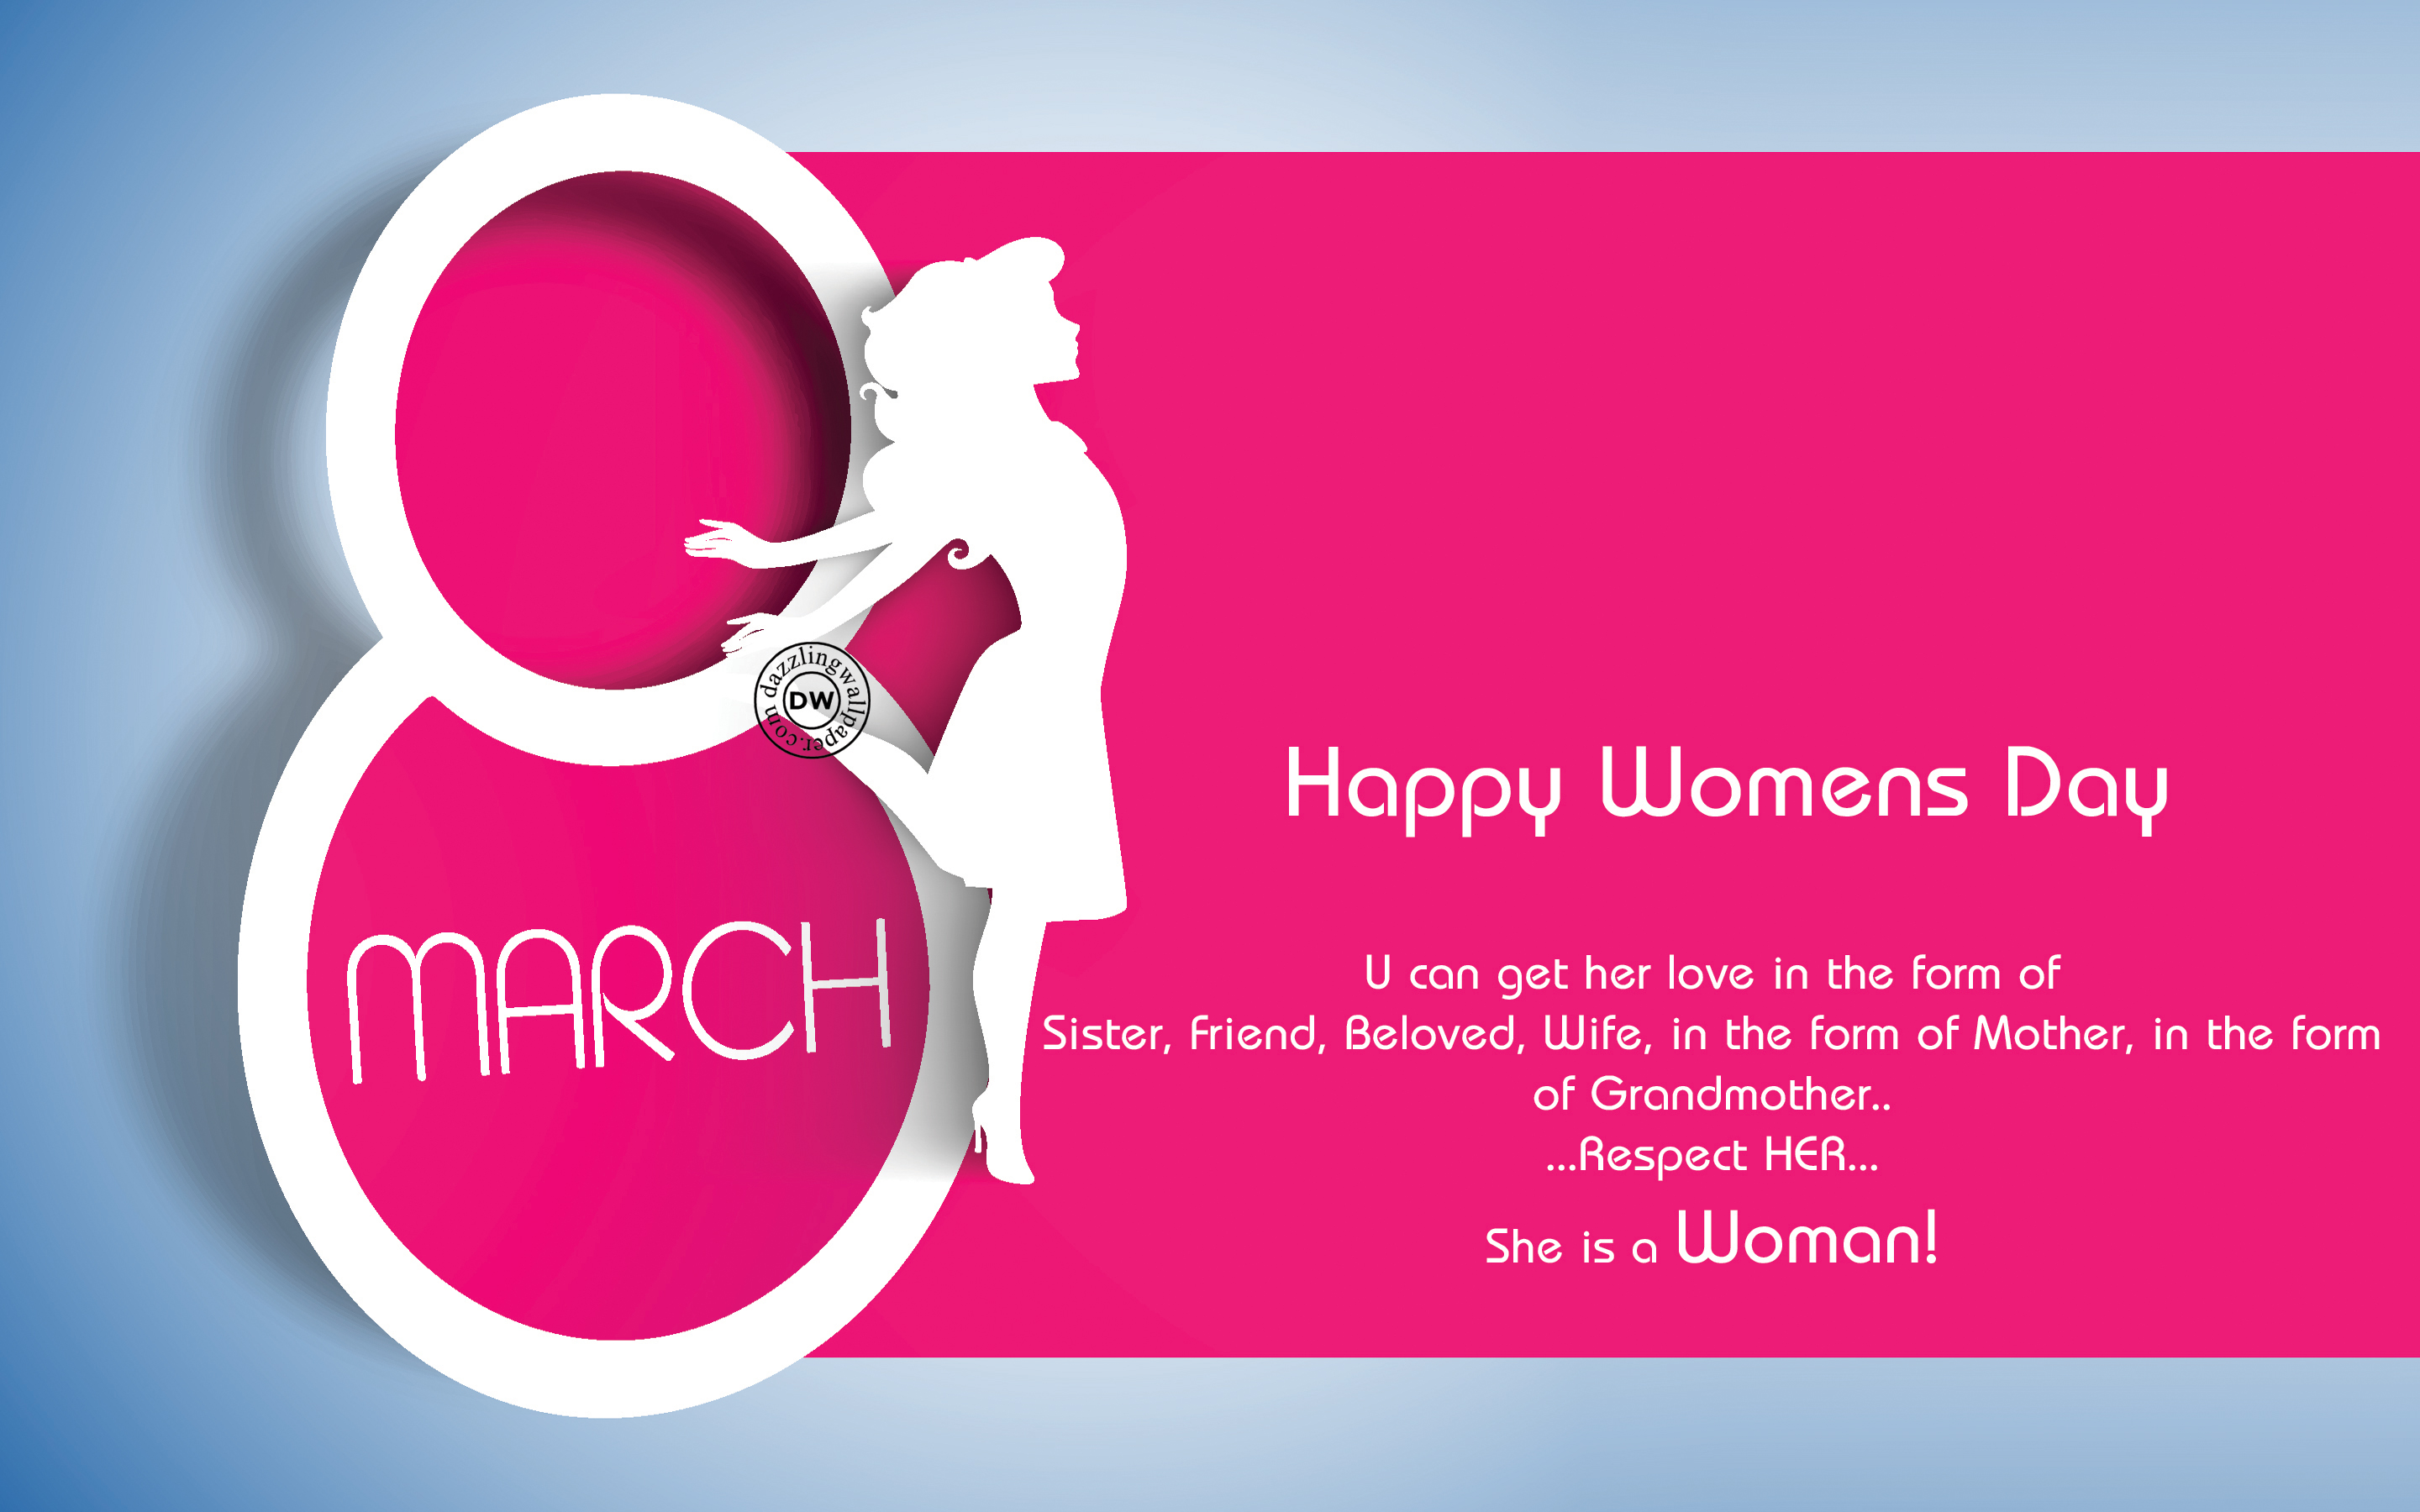 Happy Women's Day 2016 Messages